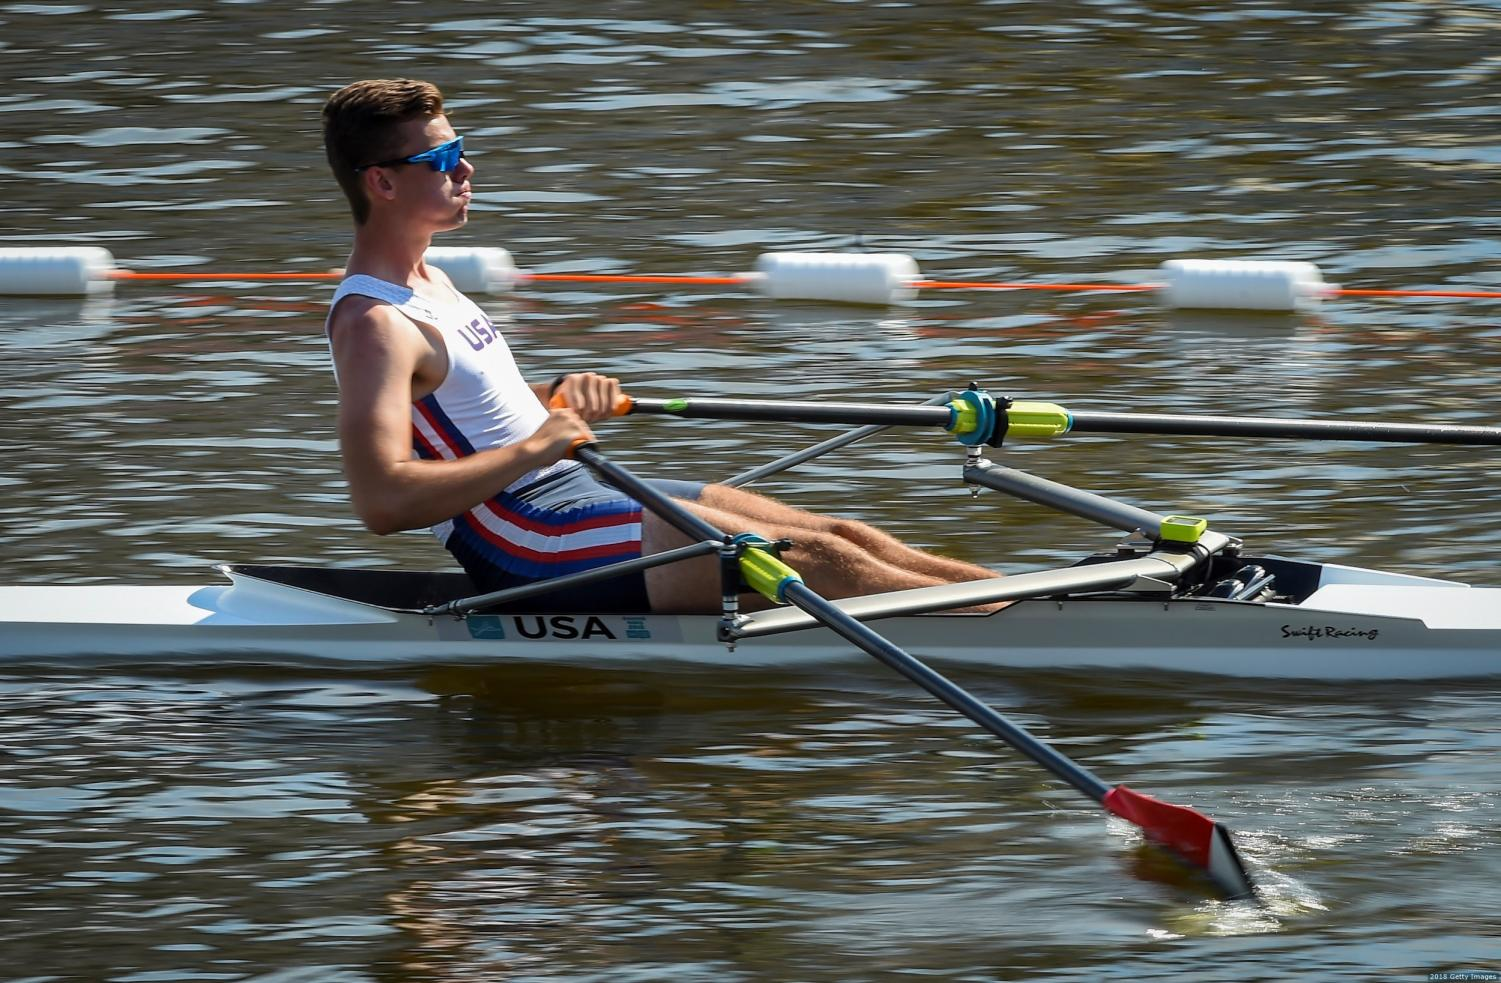 Rower Max Heid '19 practices on Lake Union. Heid will row at The University of Washington next year.